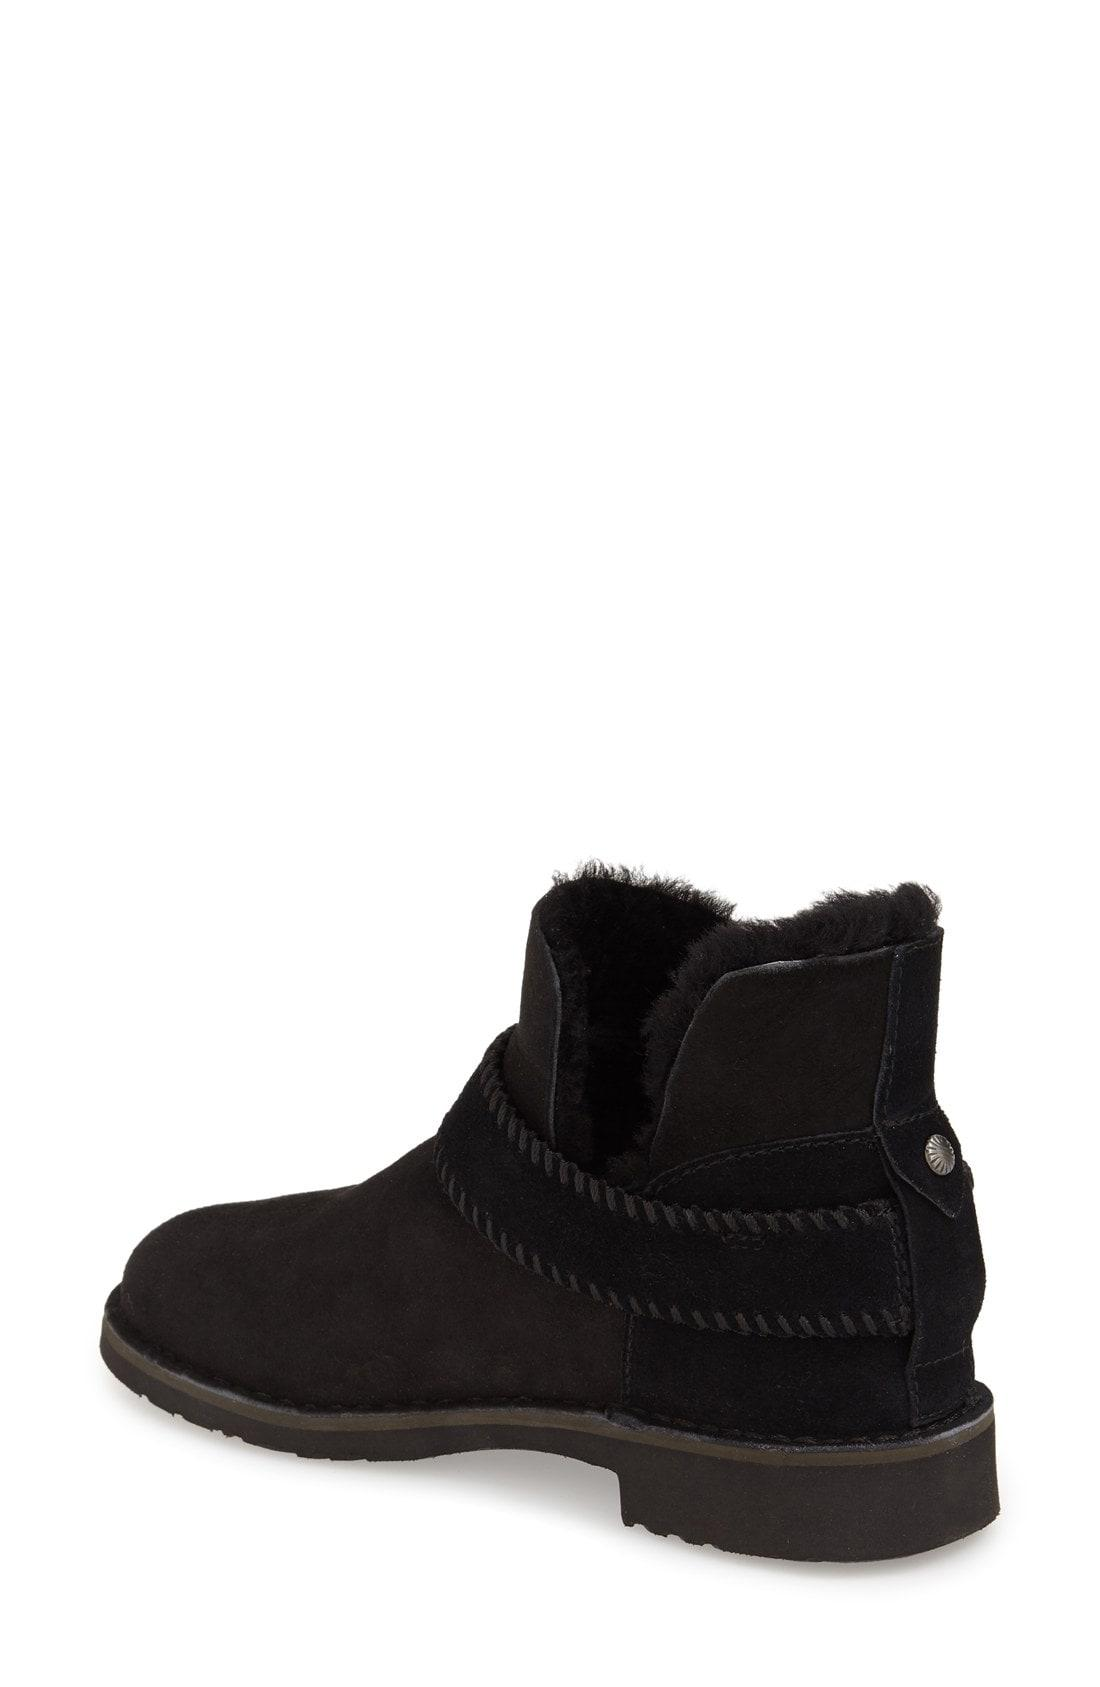 3ac7d625d6f Mckay Fold Cuff Suede Ankle Boots With Shearling in Black